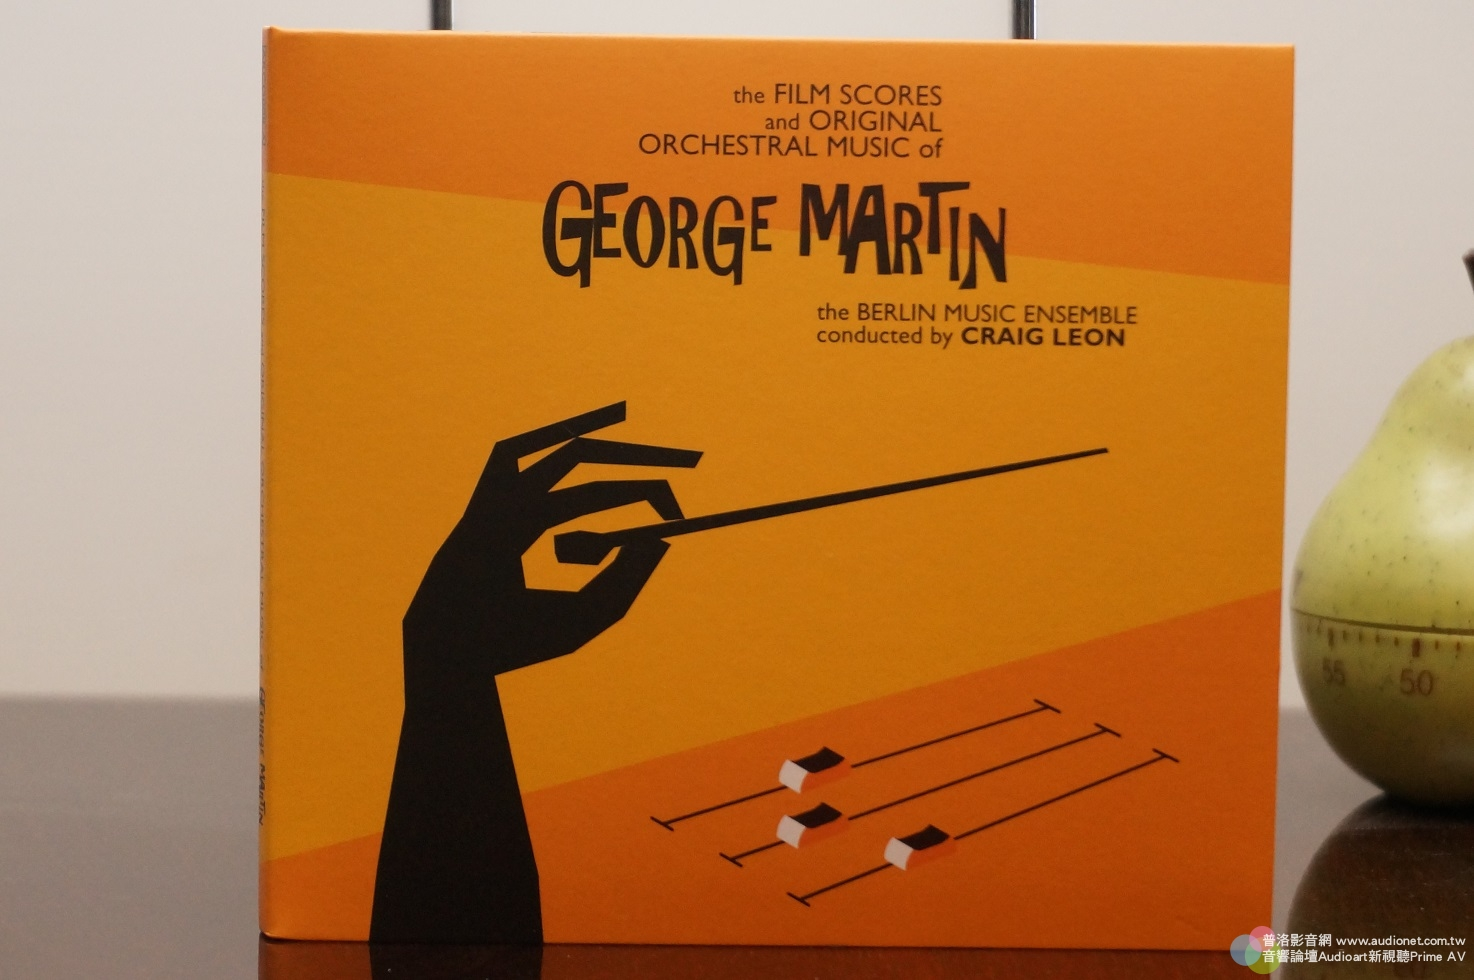 The Film Scores and Original Orchestra Music of George Martin